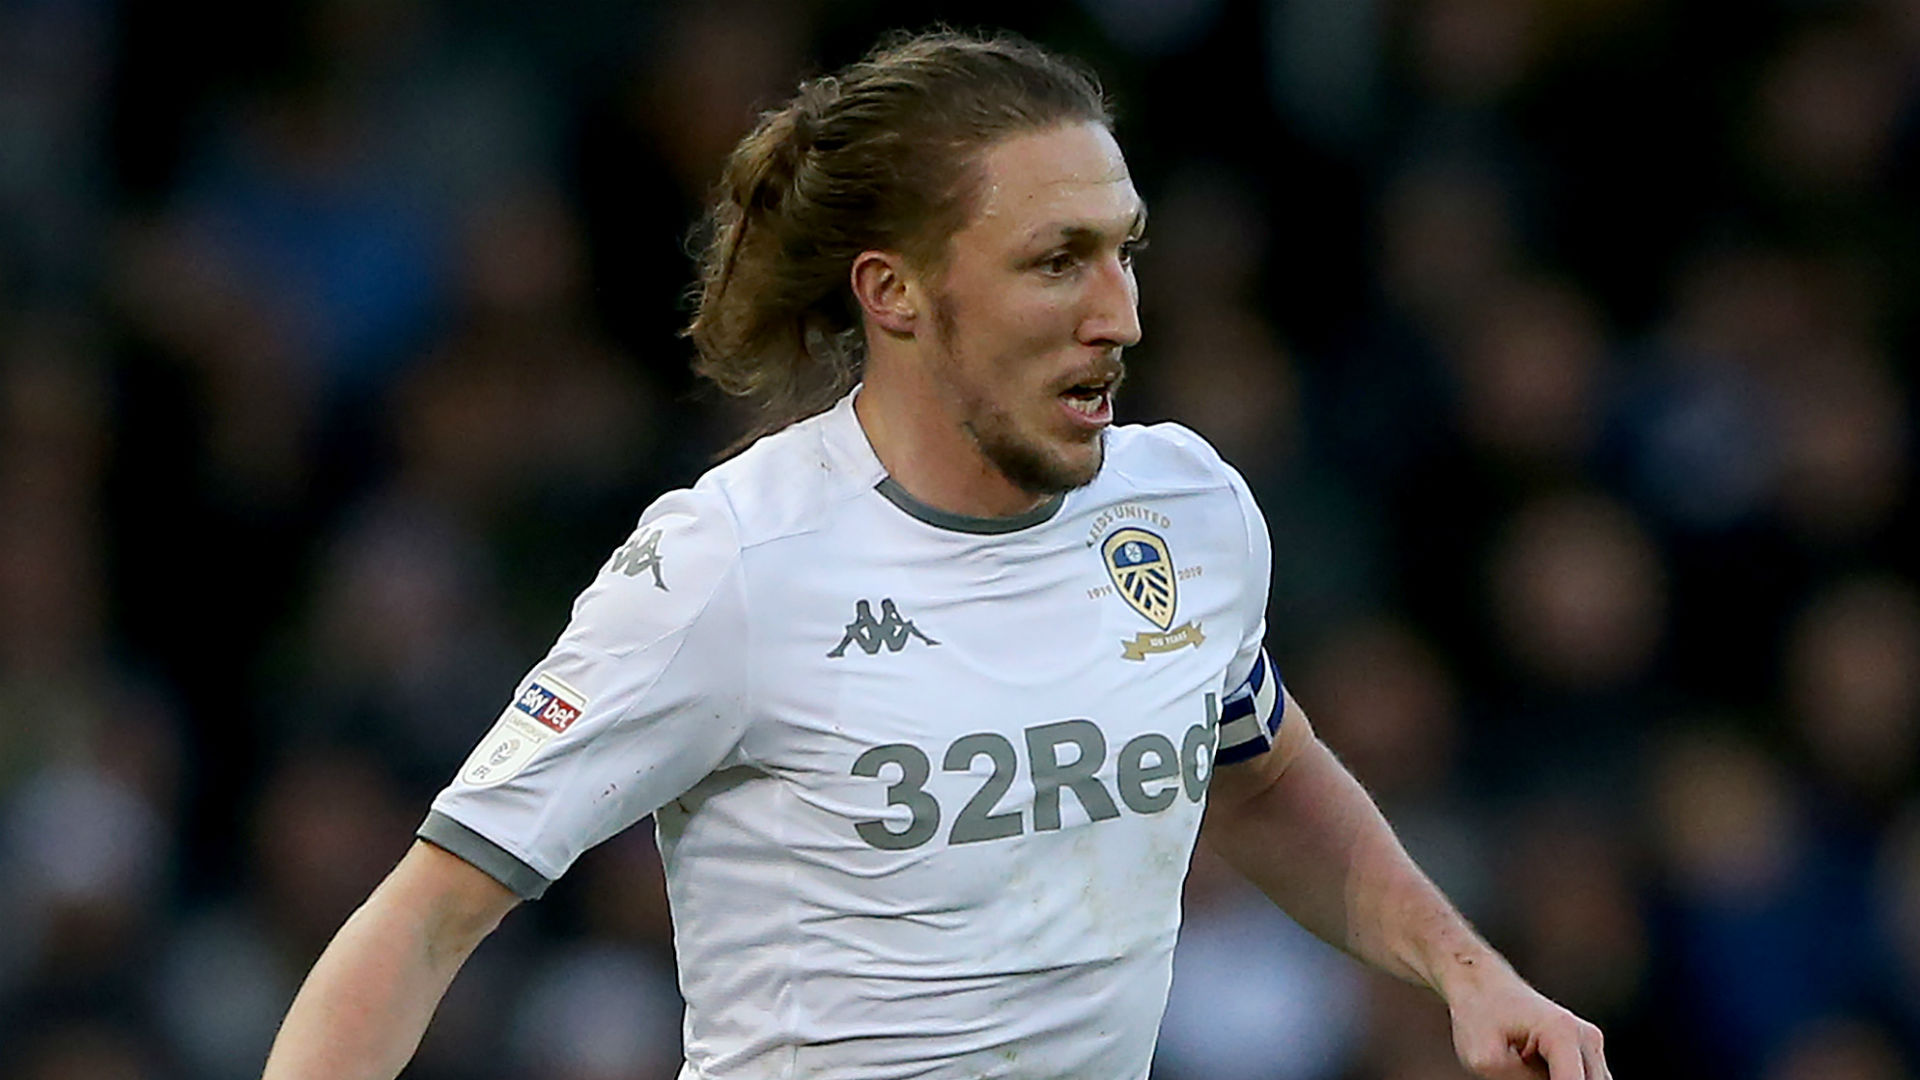 Championship: Leeds United end 2019 on top as Fletcher stunner sinks West Brom